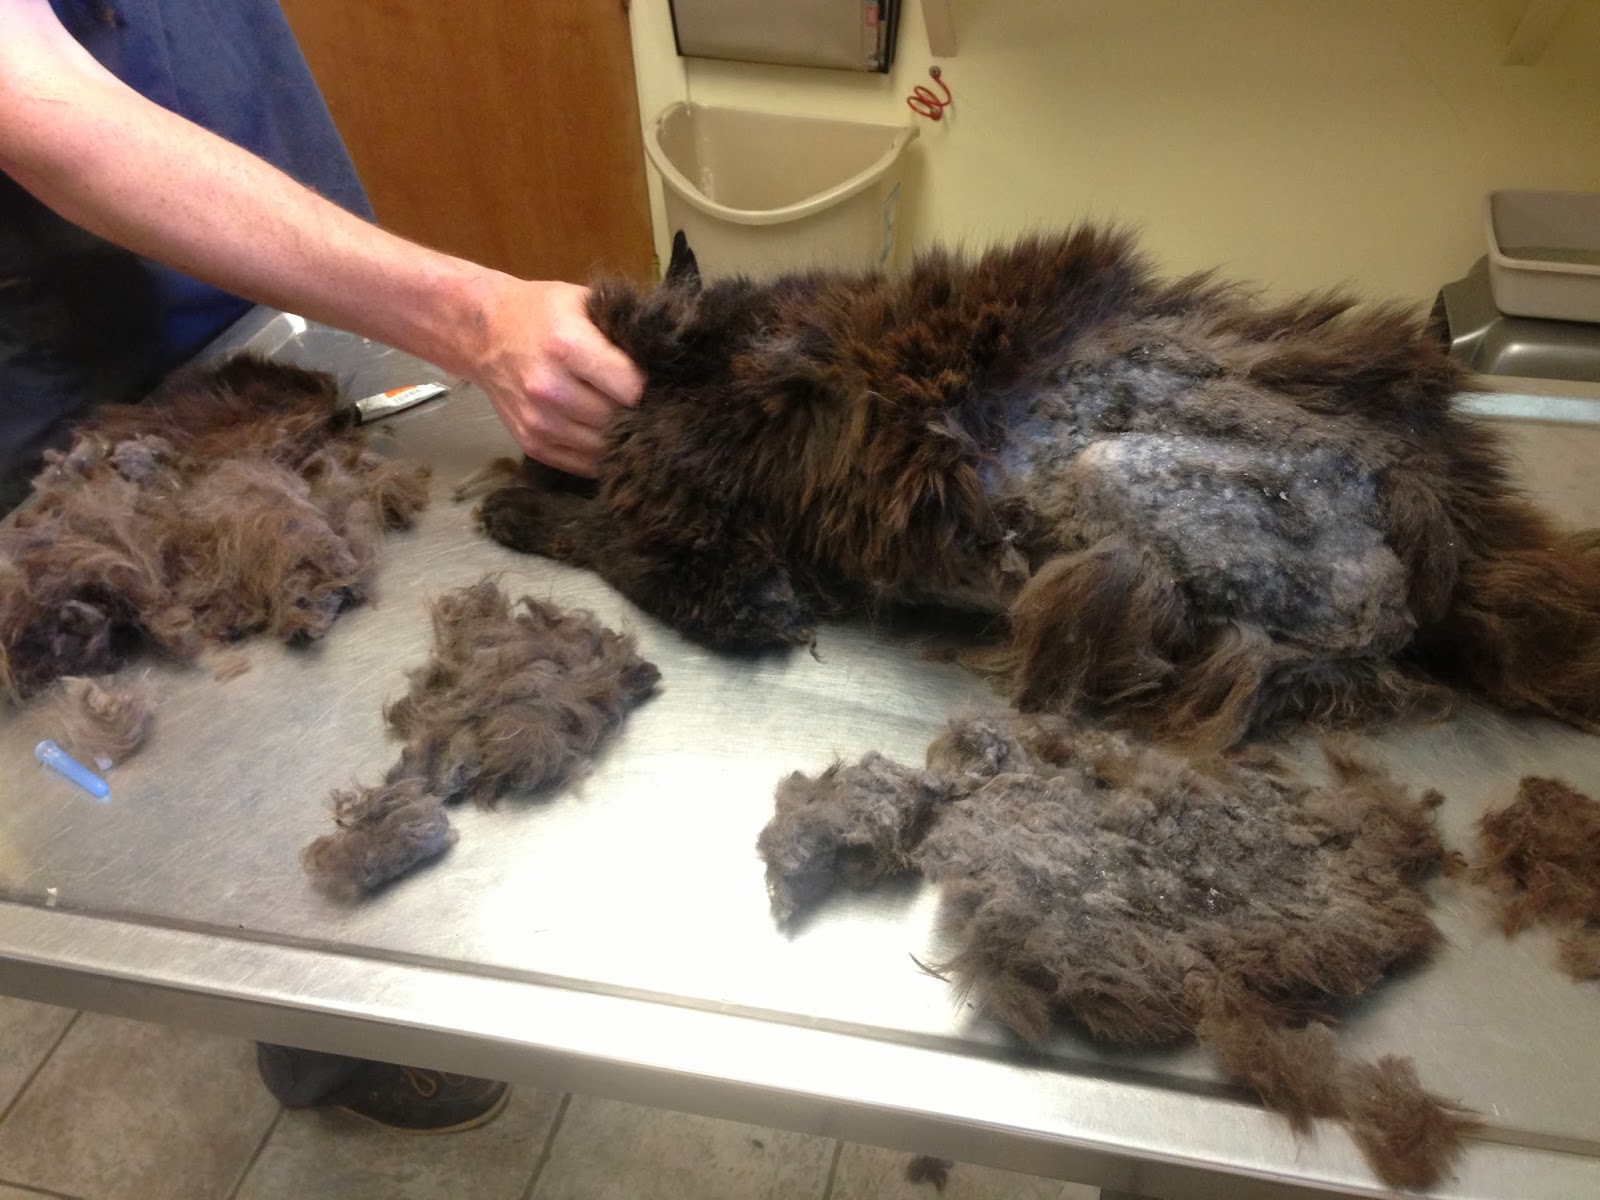 Dog Matted Fur Remedies How To Detangle Matted Dog Fur 5